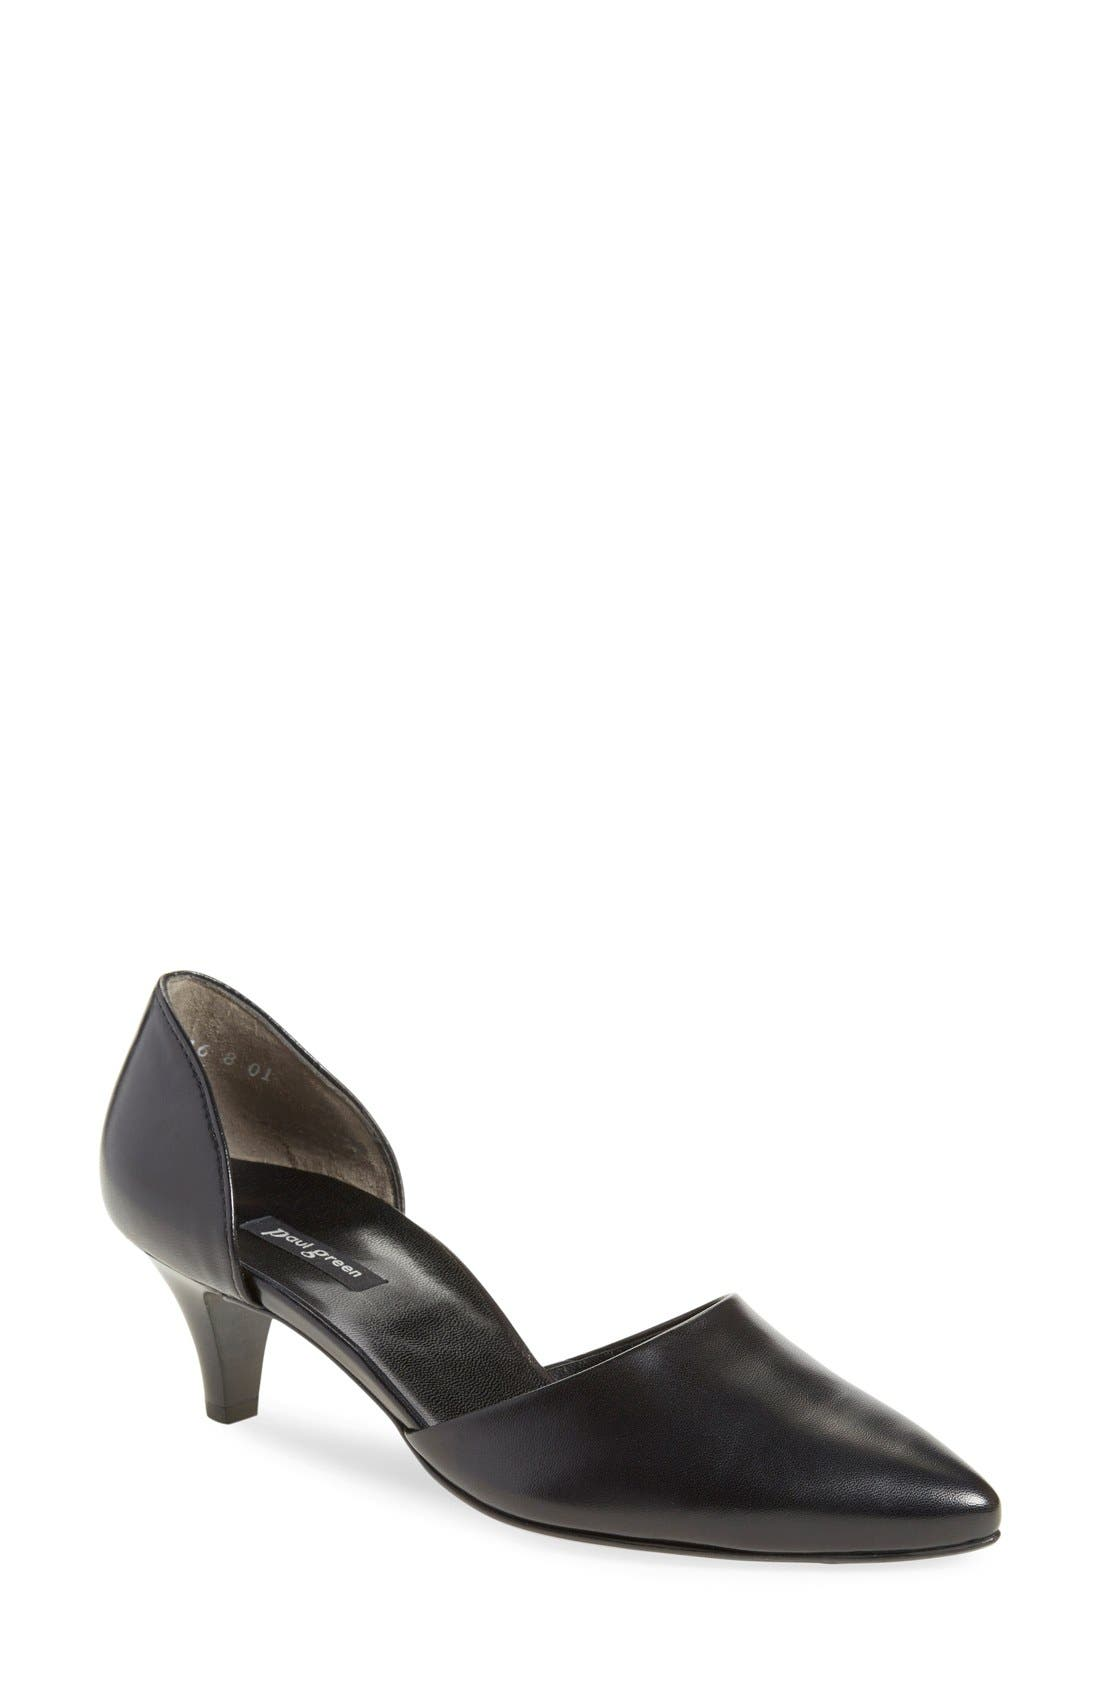 'Julia' d'Orsay Pump,                         Main,                         color,